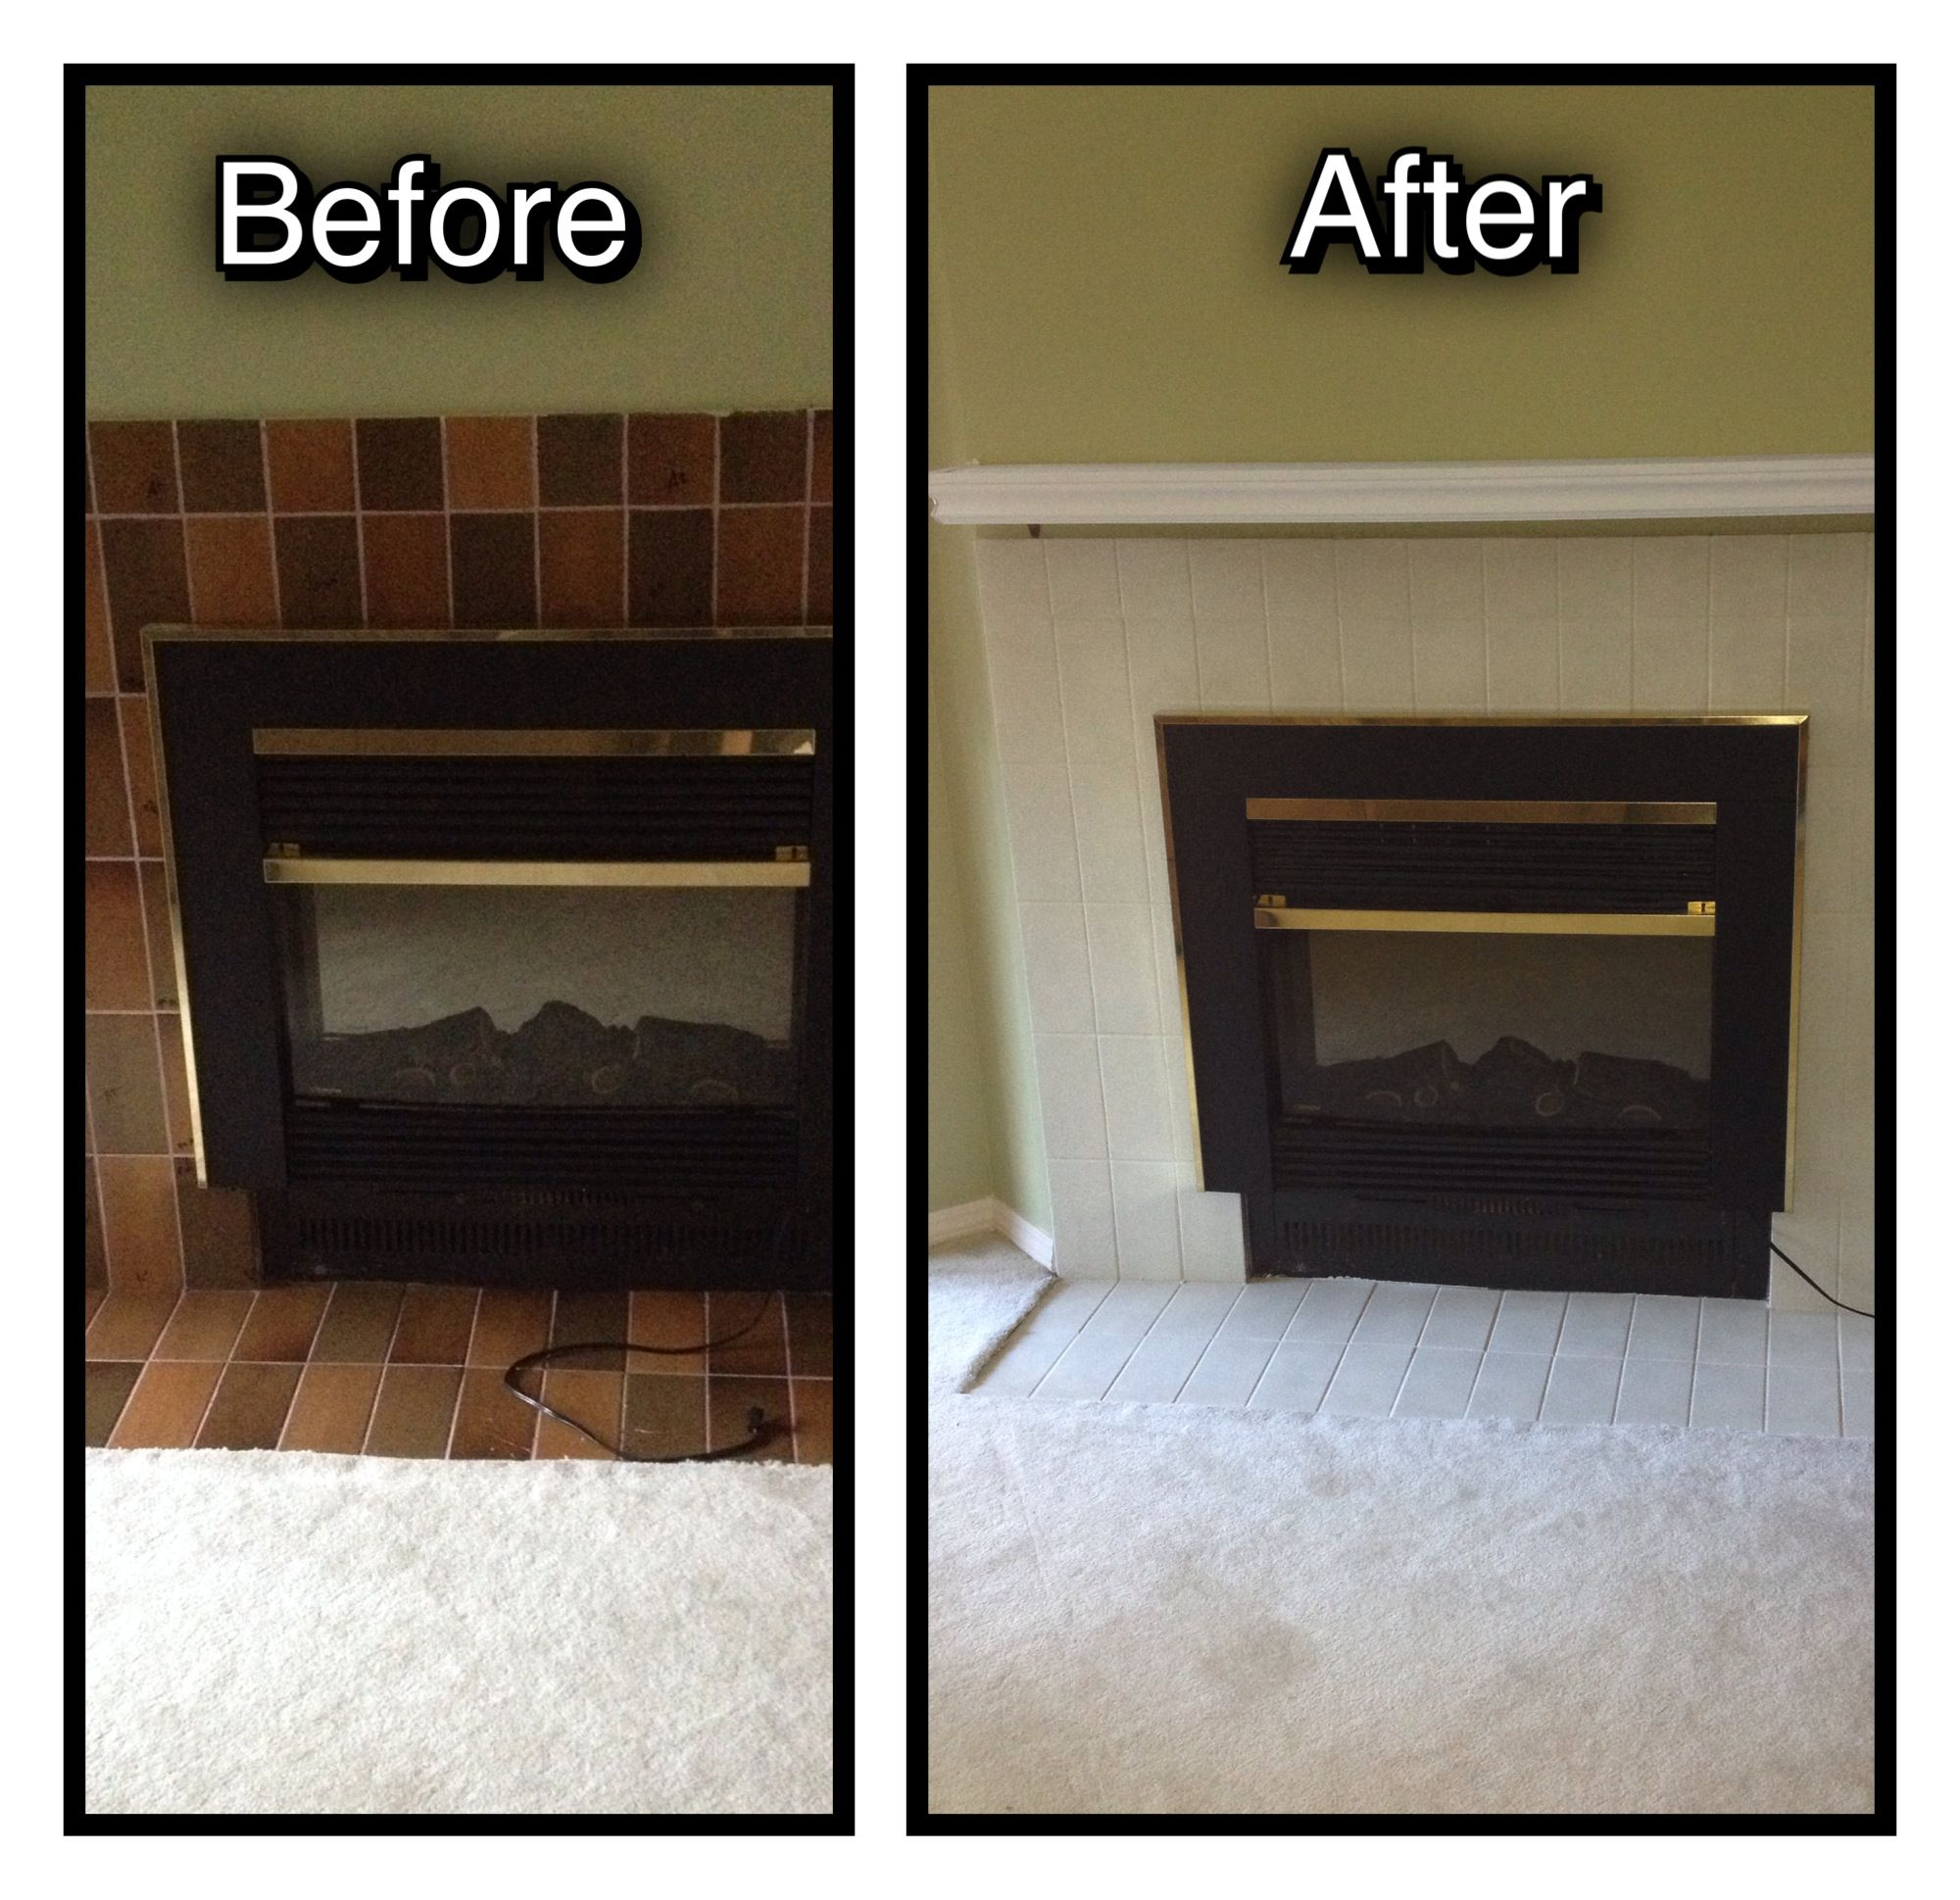 Can You Paint Over Bathroom Wall Tiles: $60 Fireplace DIY Facelift. I Have Done This Myself, In